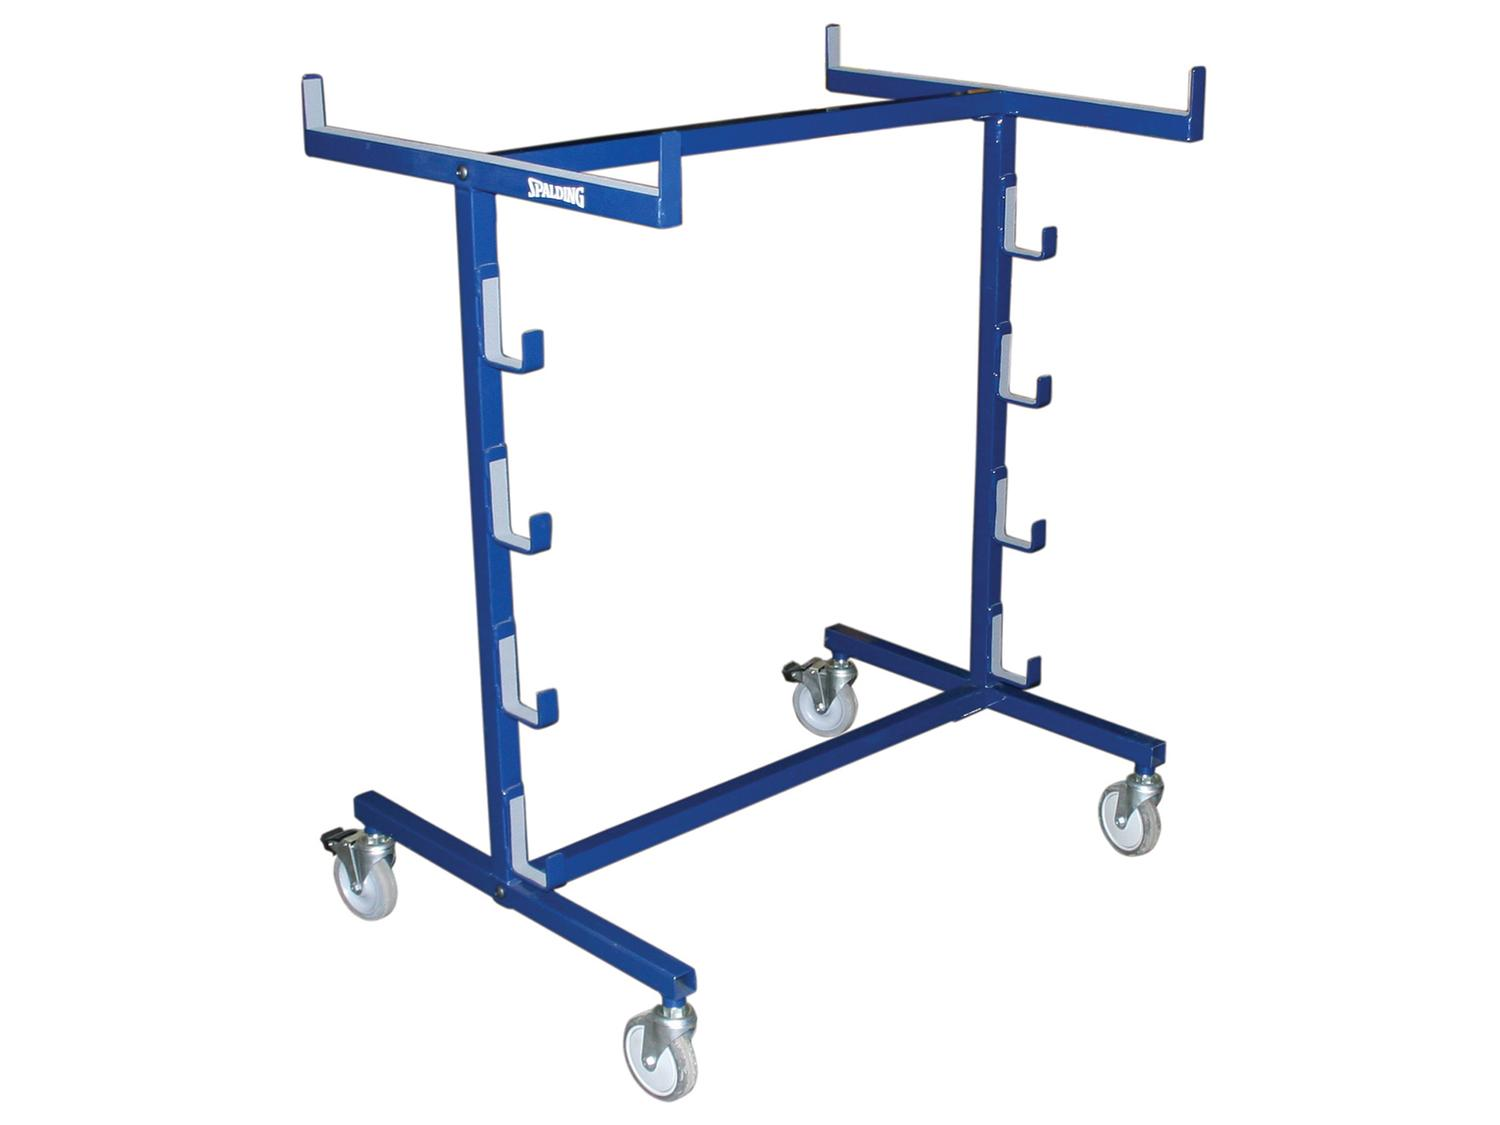 Holds 4 uprights, padding, nets, and a referee platform, 63 lb